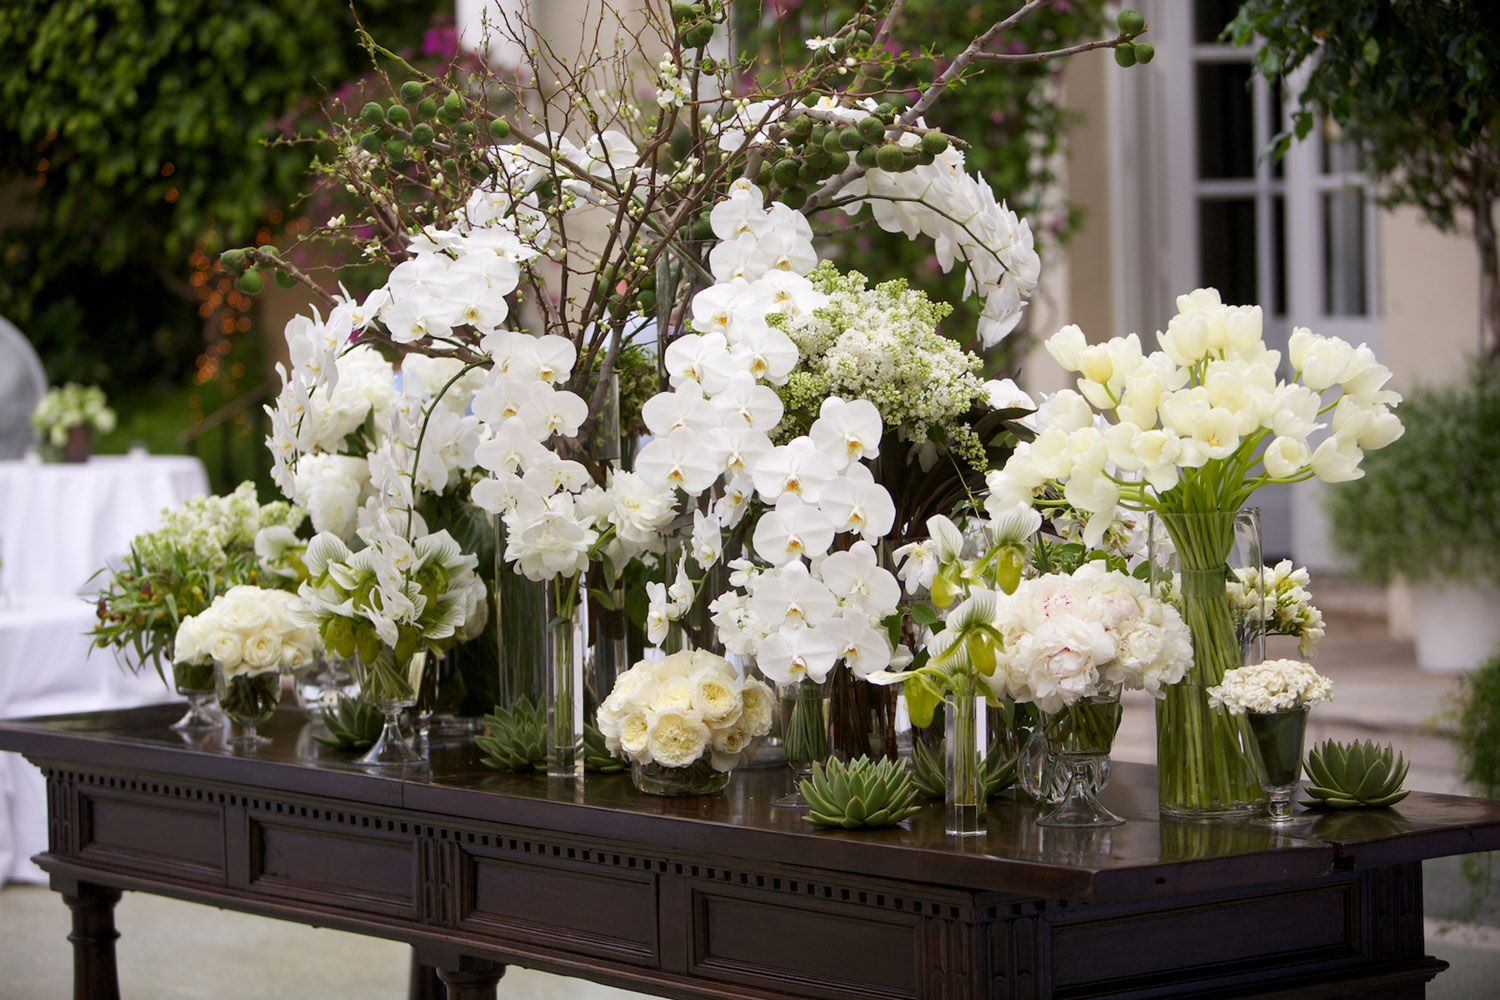 VAN WYCK Welcome Table Of White Flower Arrangements At A Palm Beach Wedding